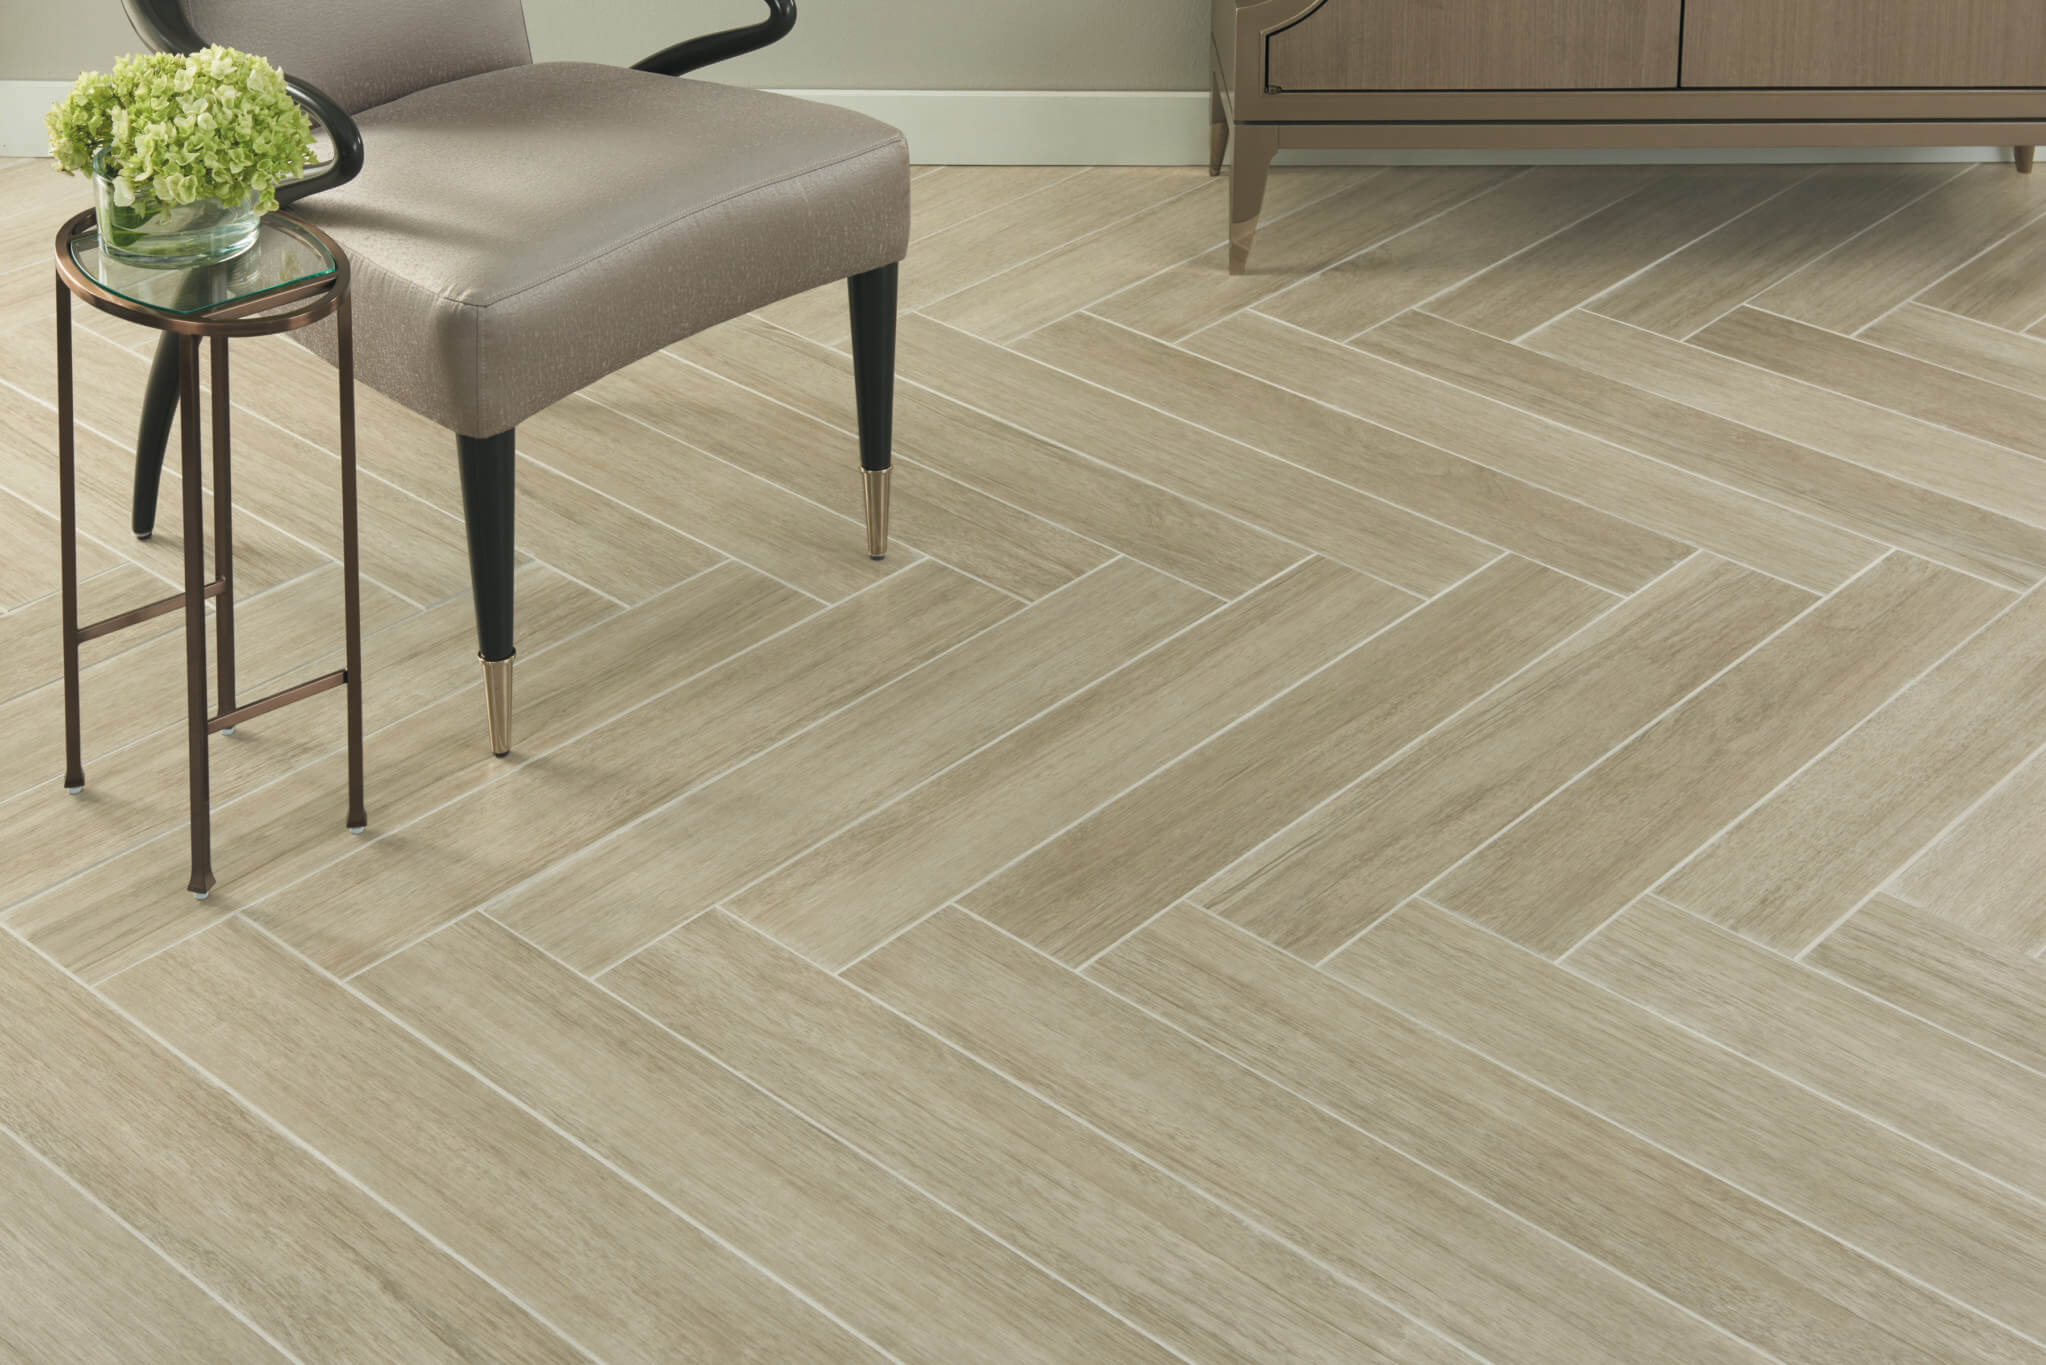 Daltile Ceramic Wood Tile